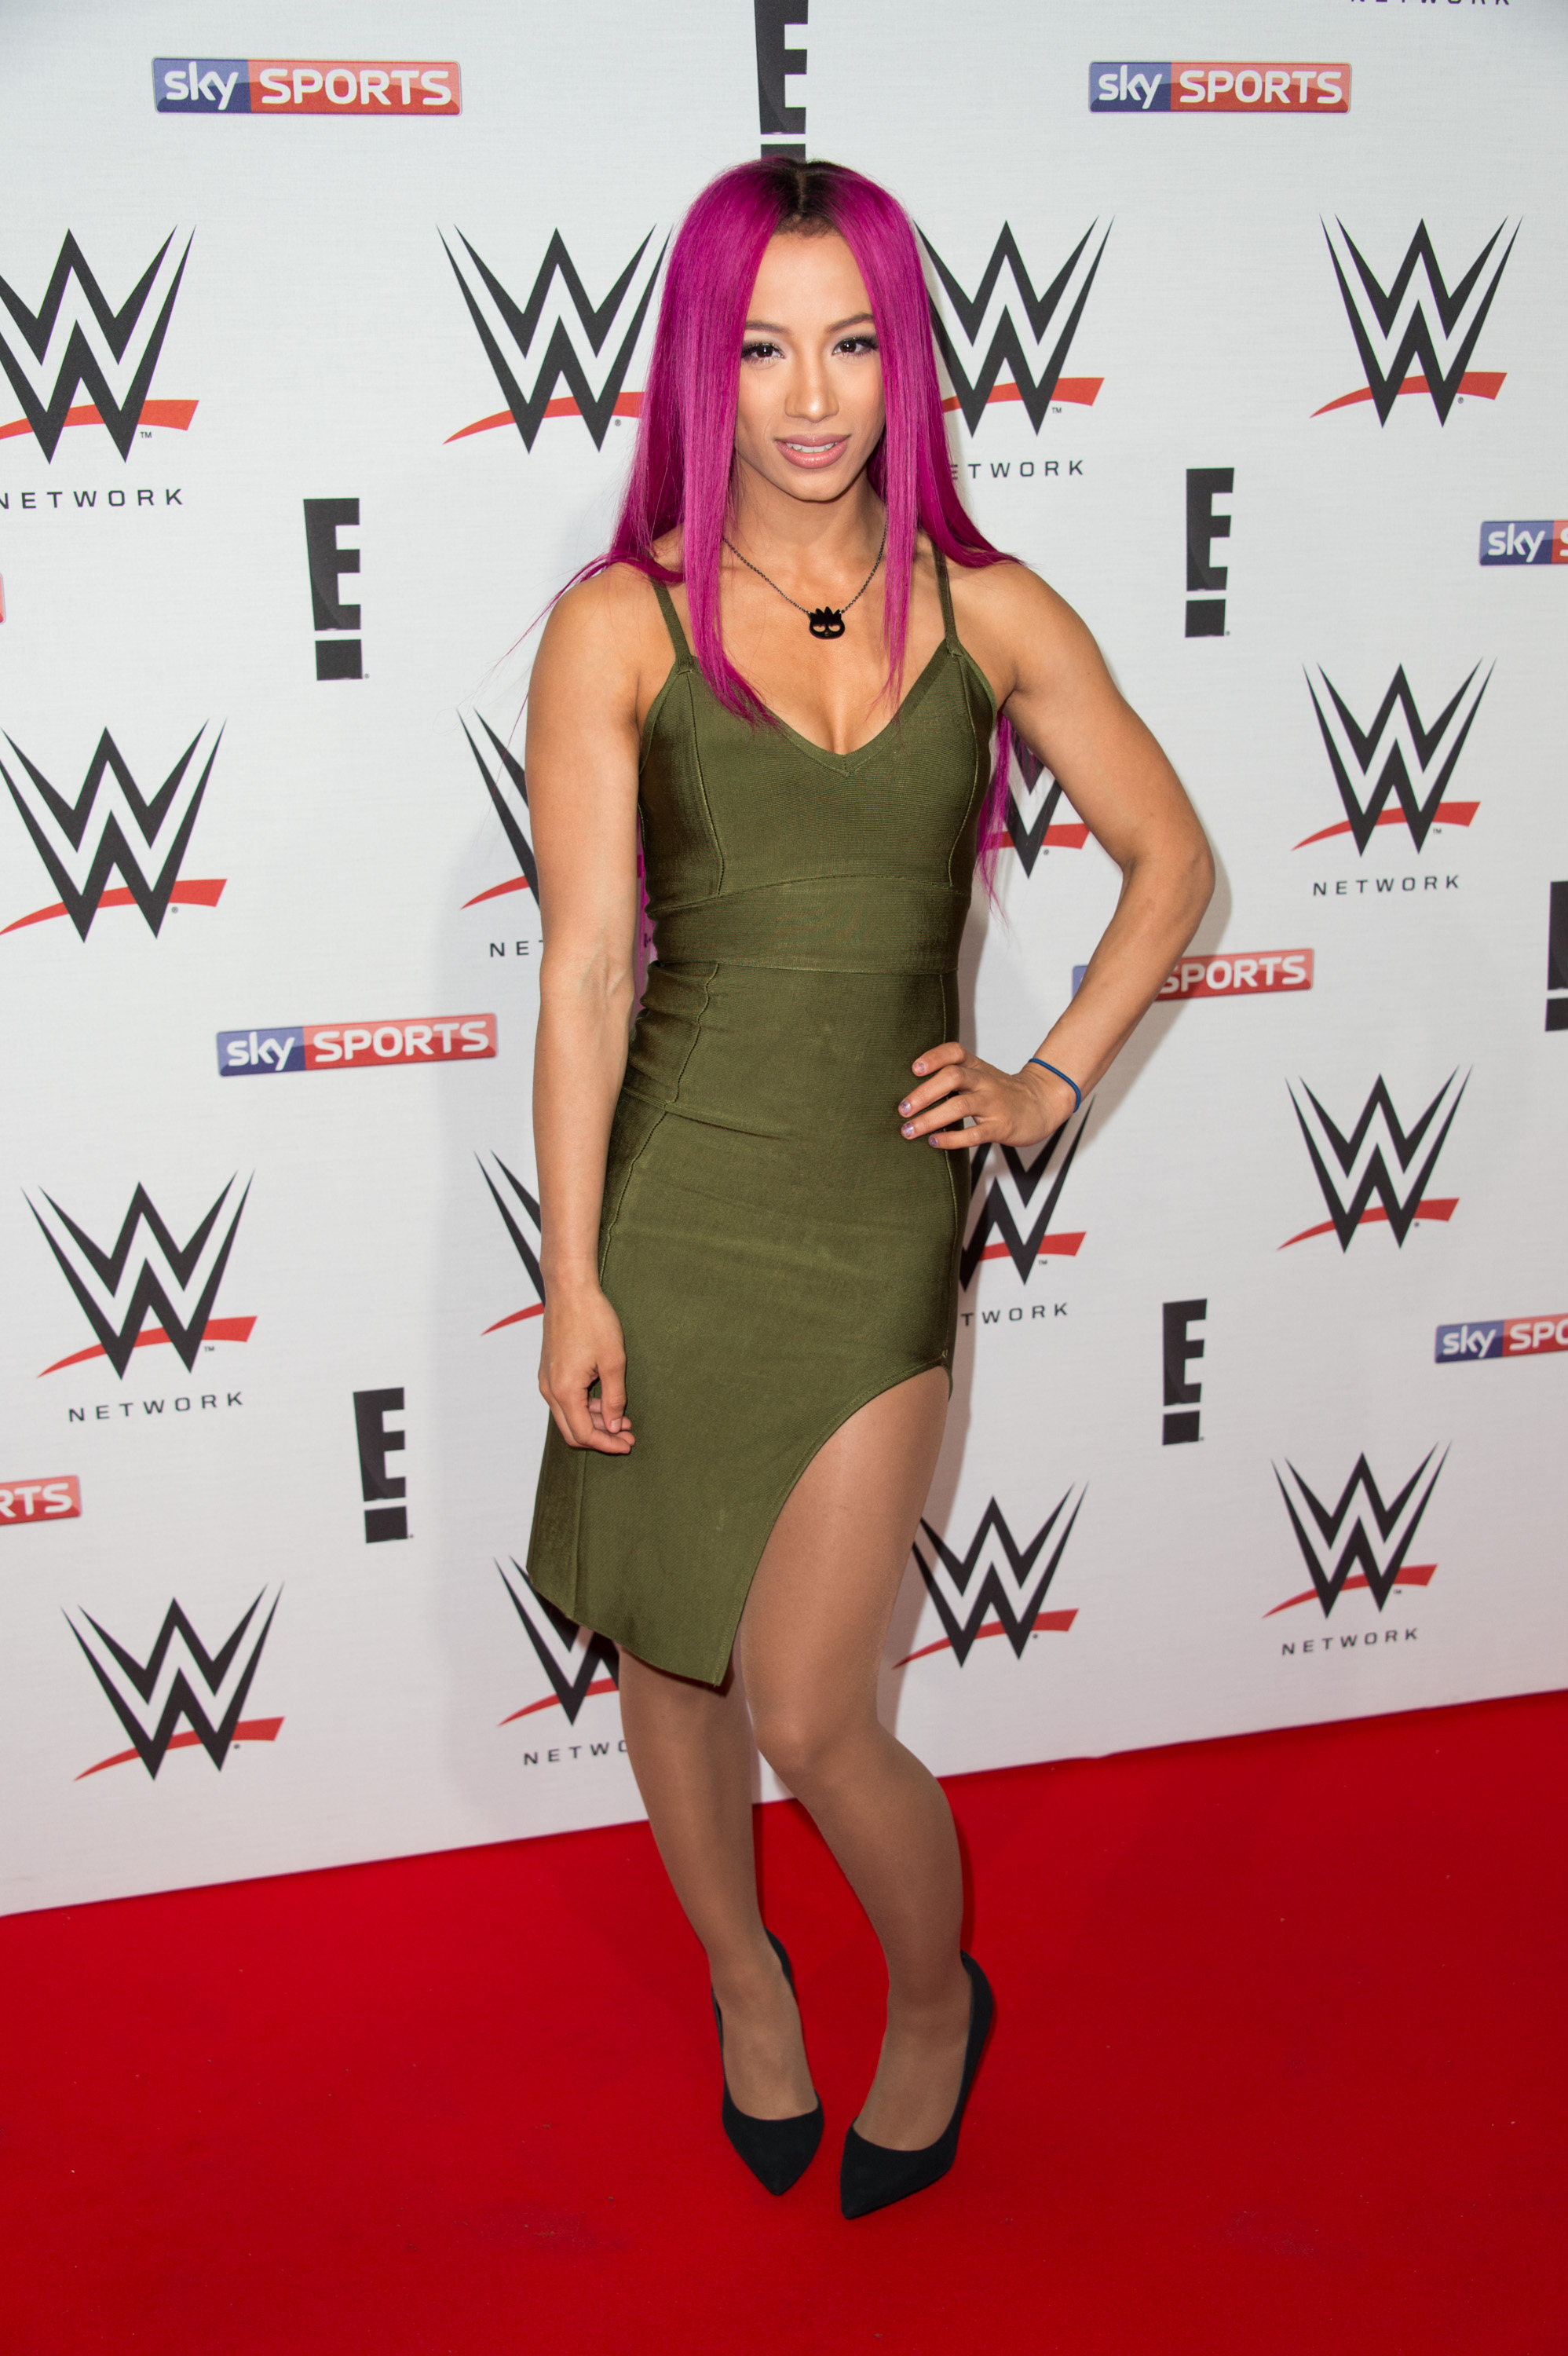 Sasha Banks Wedding.Which Wwe Star Officiated Sasha Banks Wedding